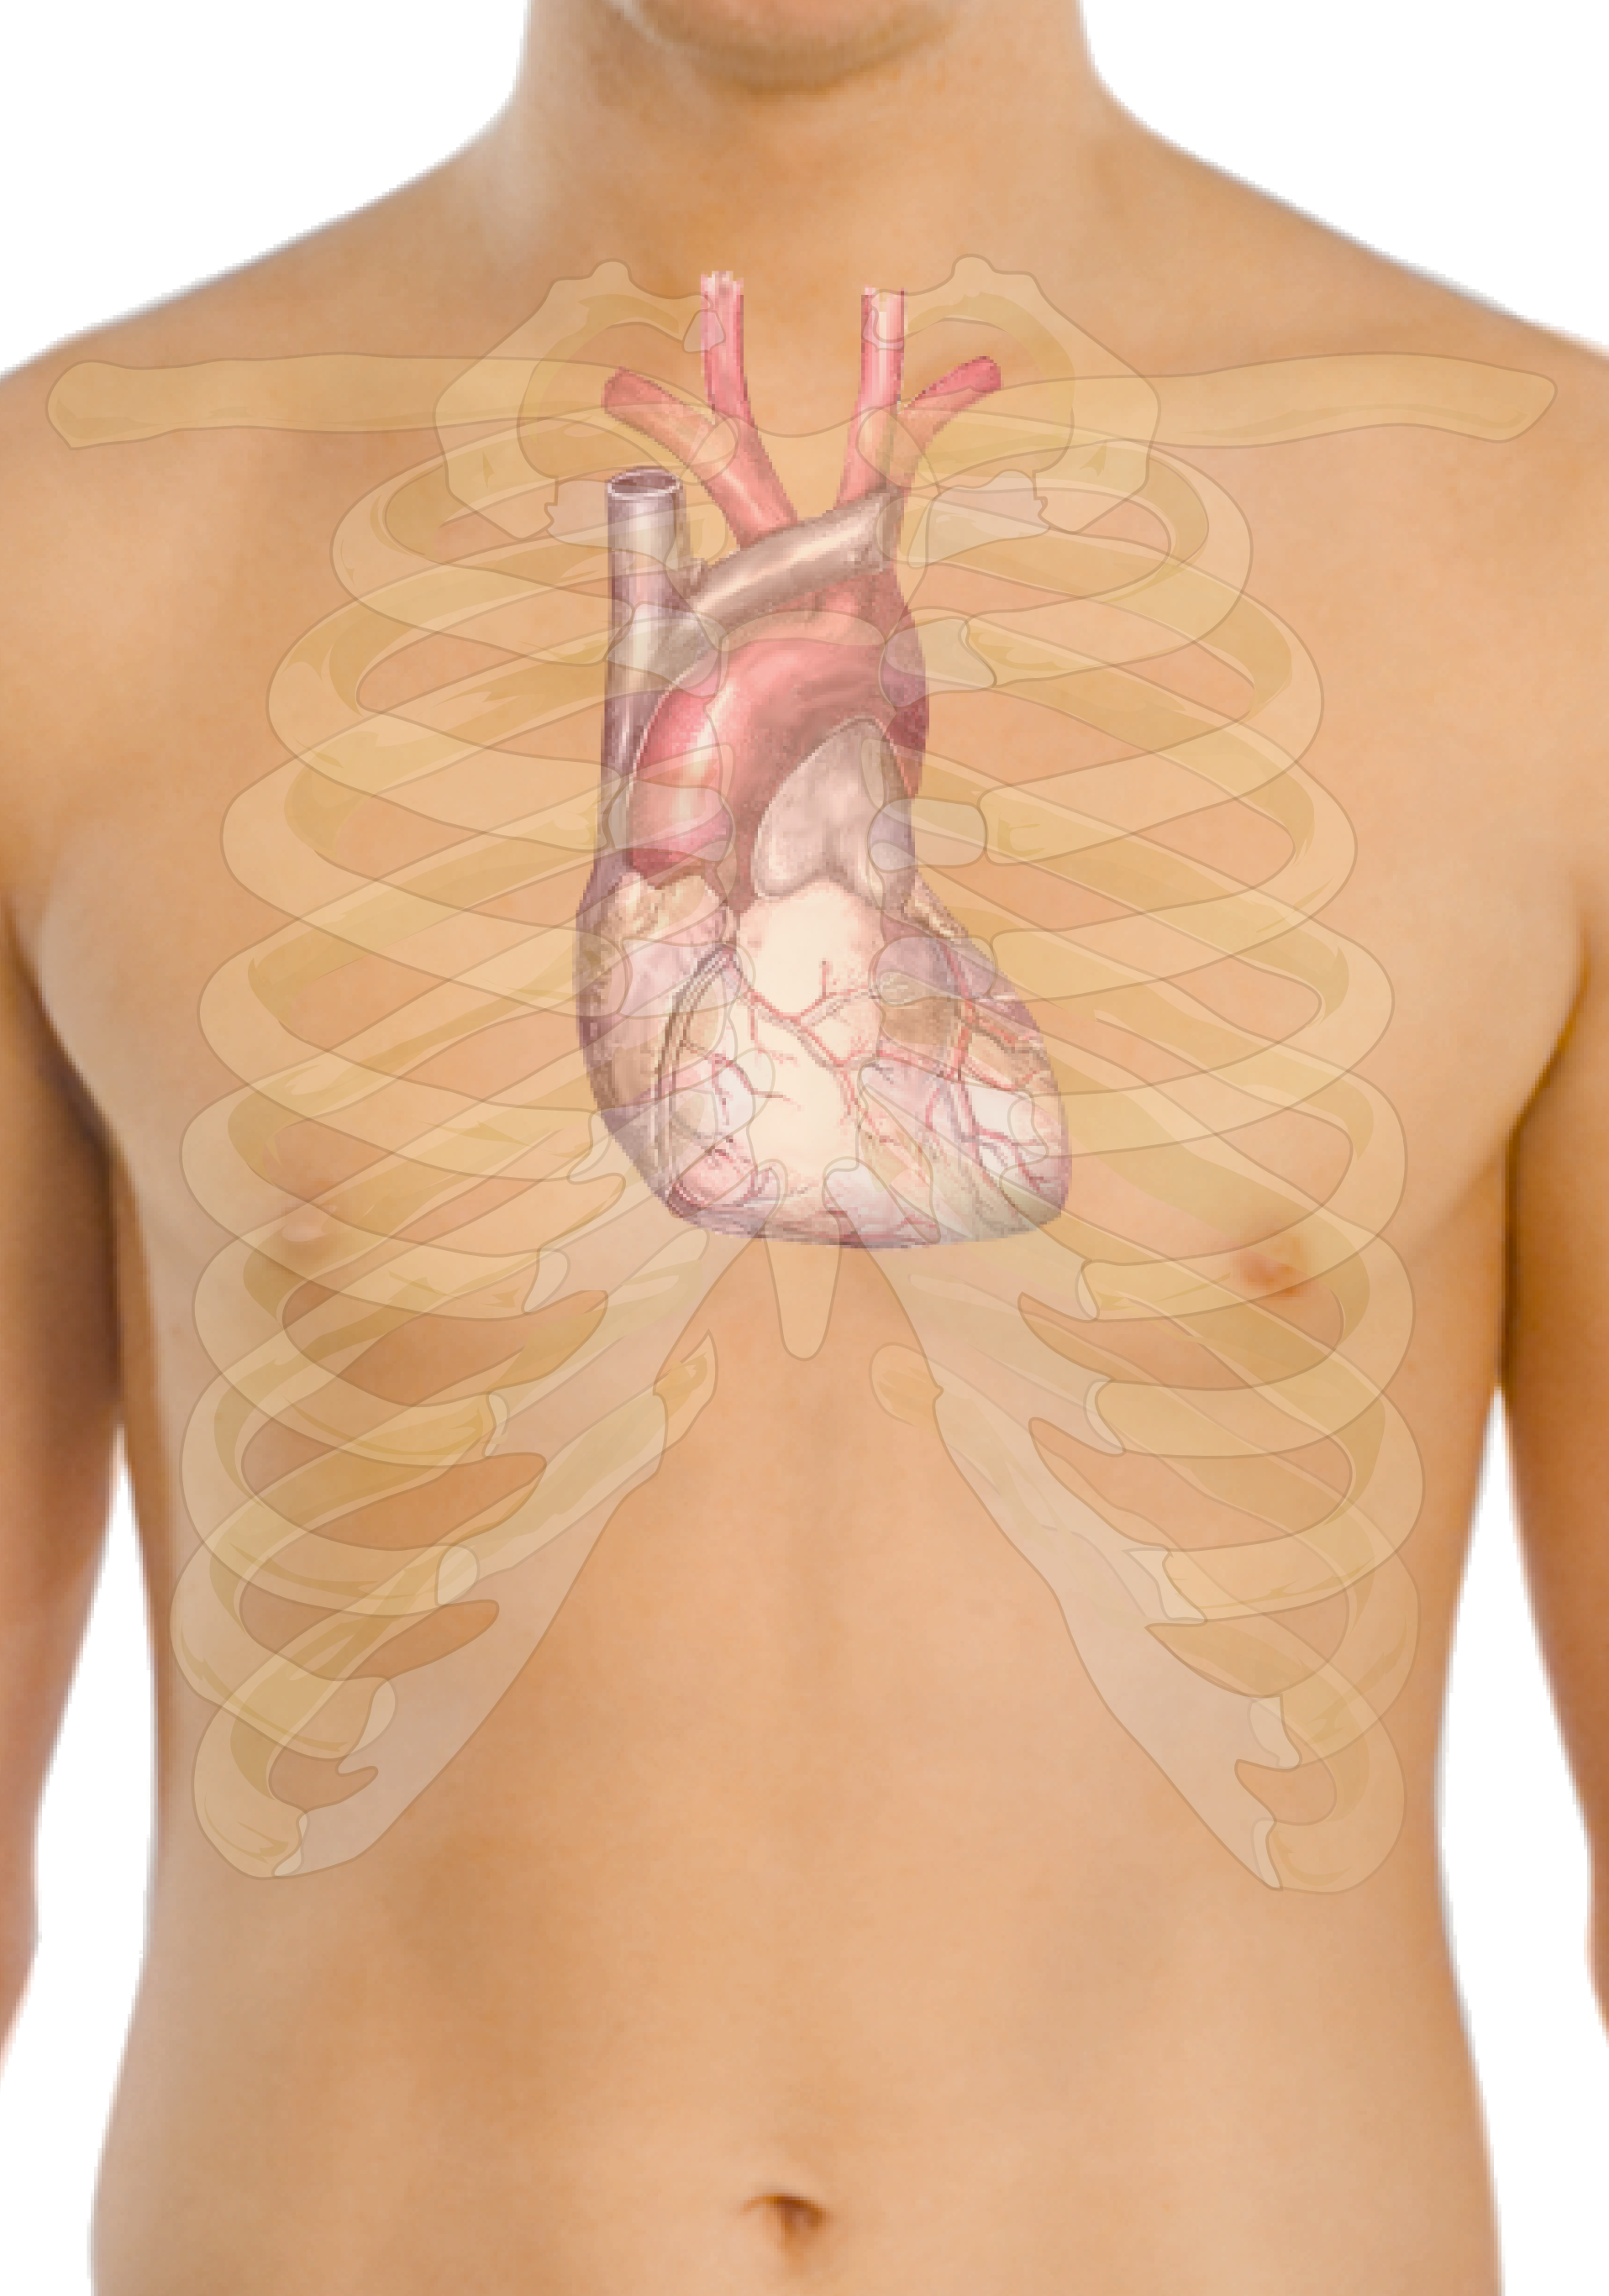 Filesurface Anatomy Of The Heartg Wikimedia Commons